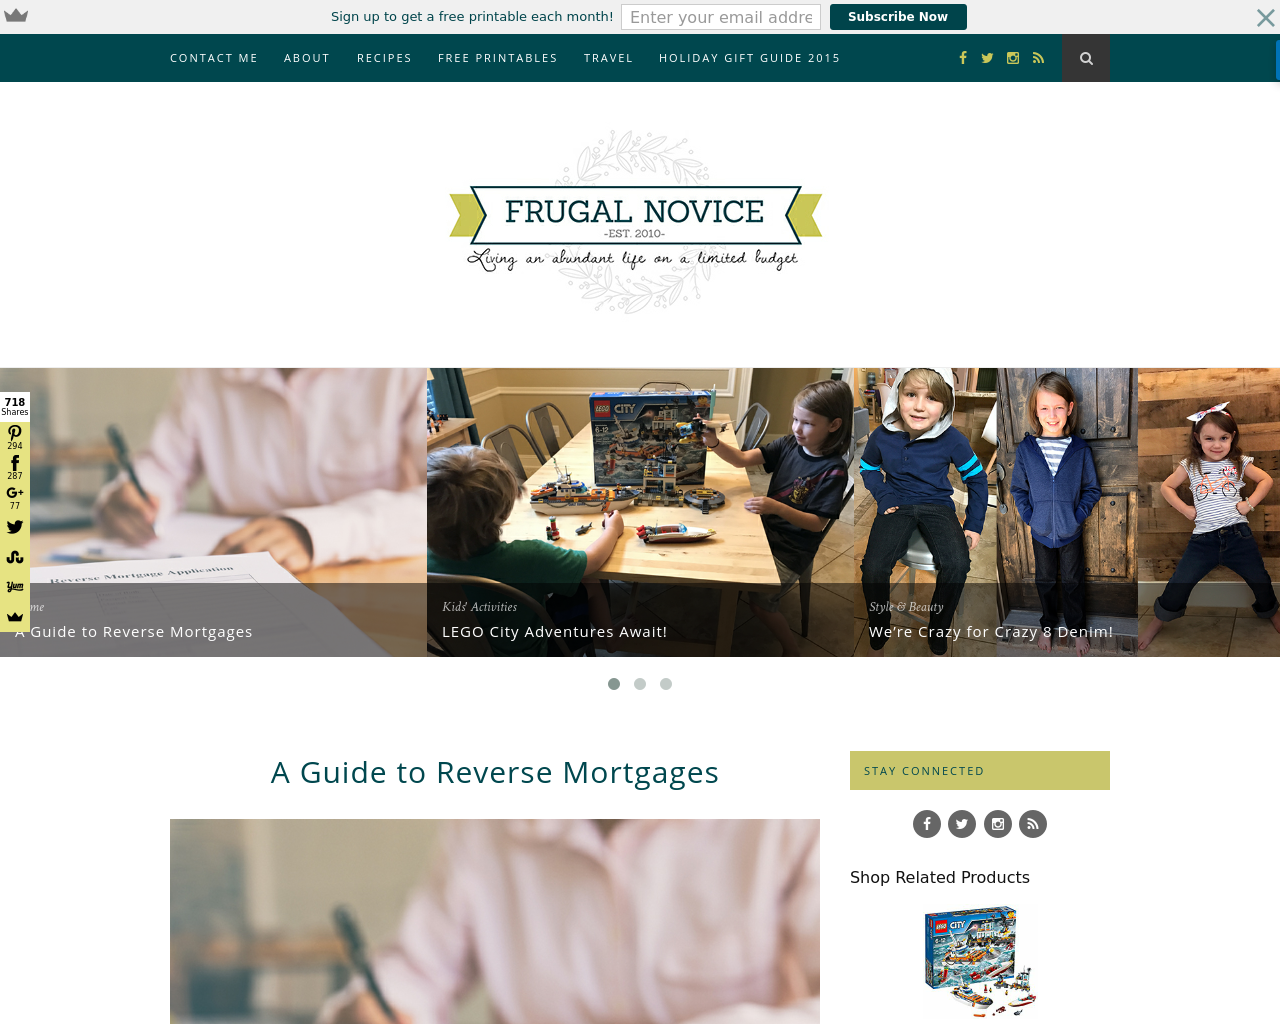 FRUGALnovice-Advertising-Reviews-Pricing